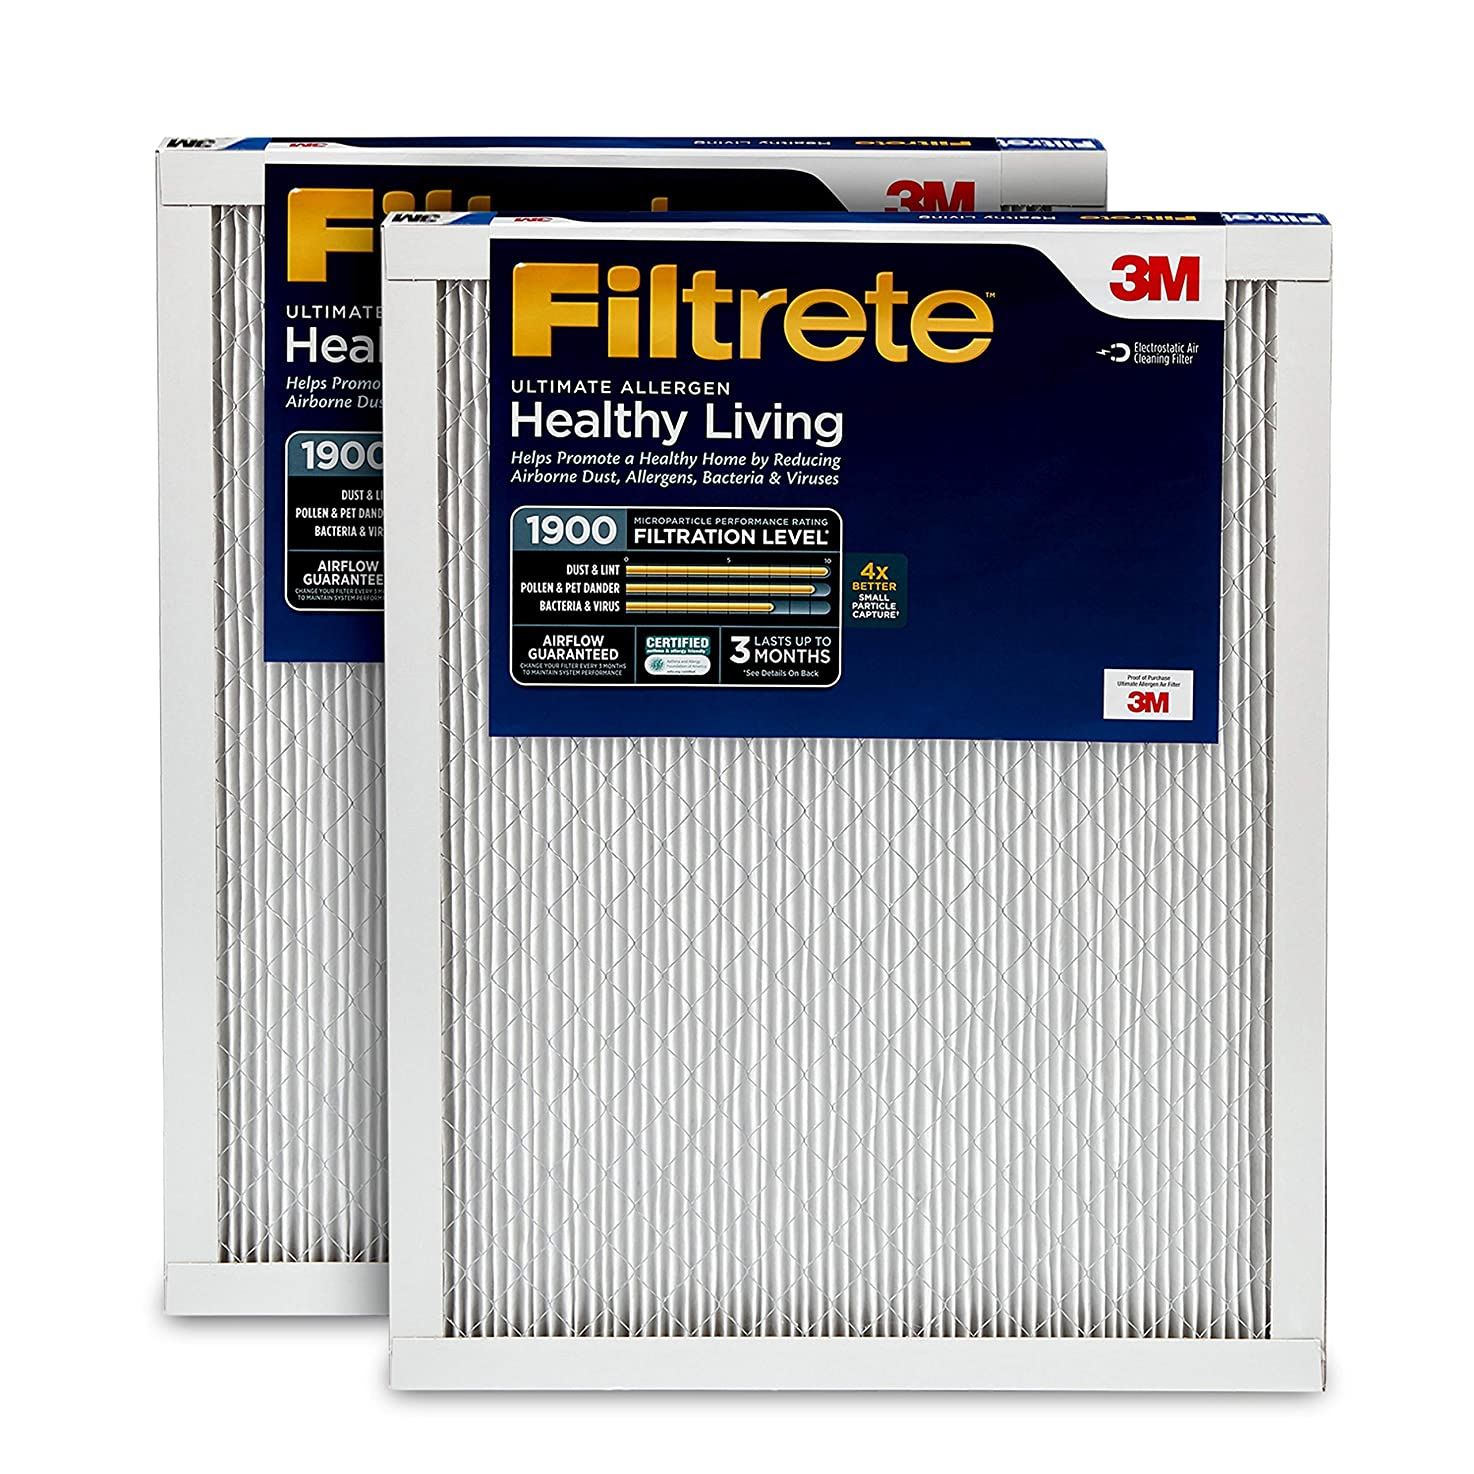 Filtrete 16x25x1, AC Furnace Air Filter, MPR 1900, Healthy Living Ultimate Allergen, 2-Pack wxlfdhevciojv7